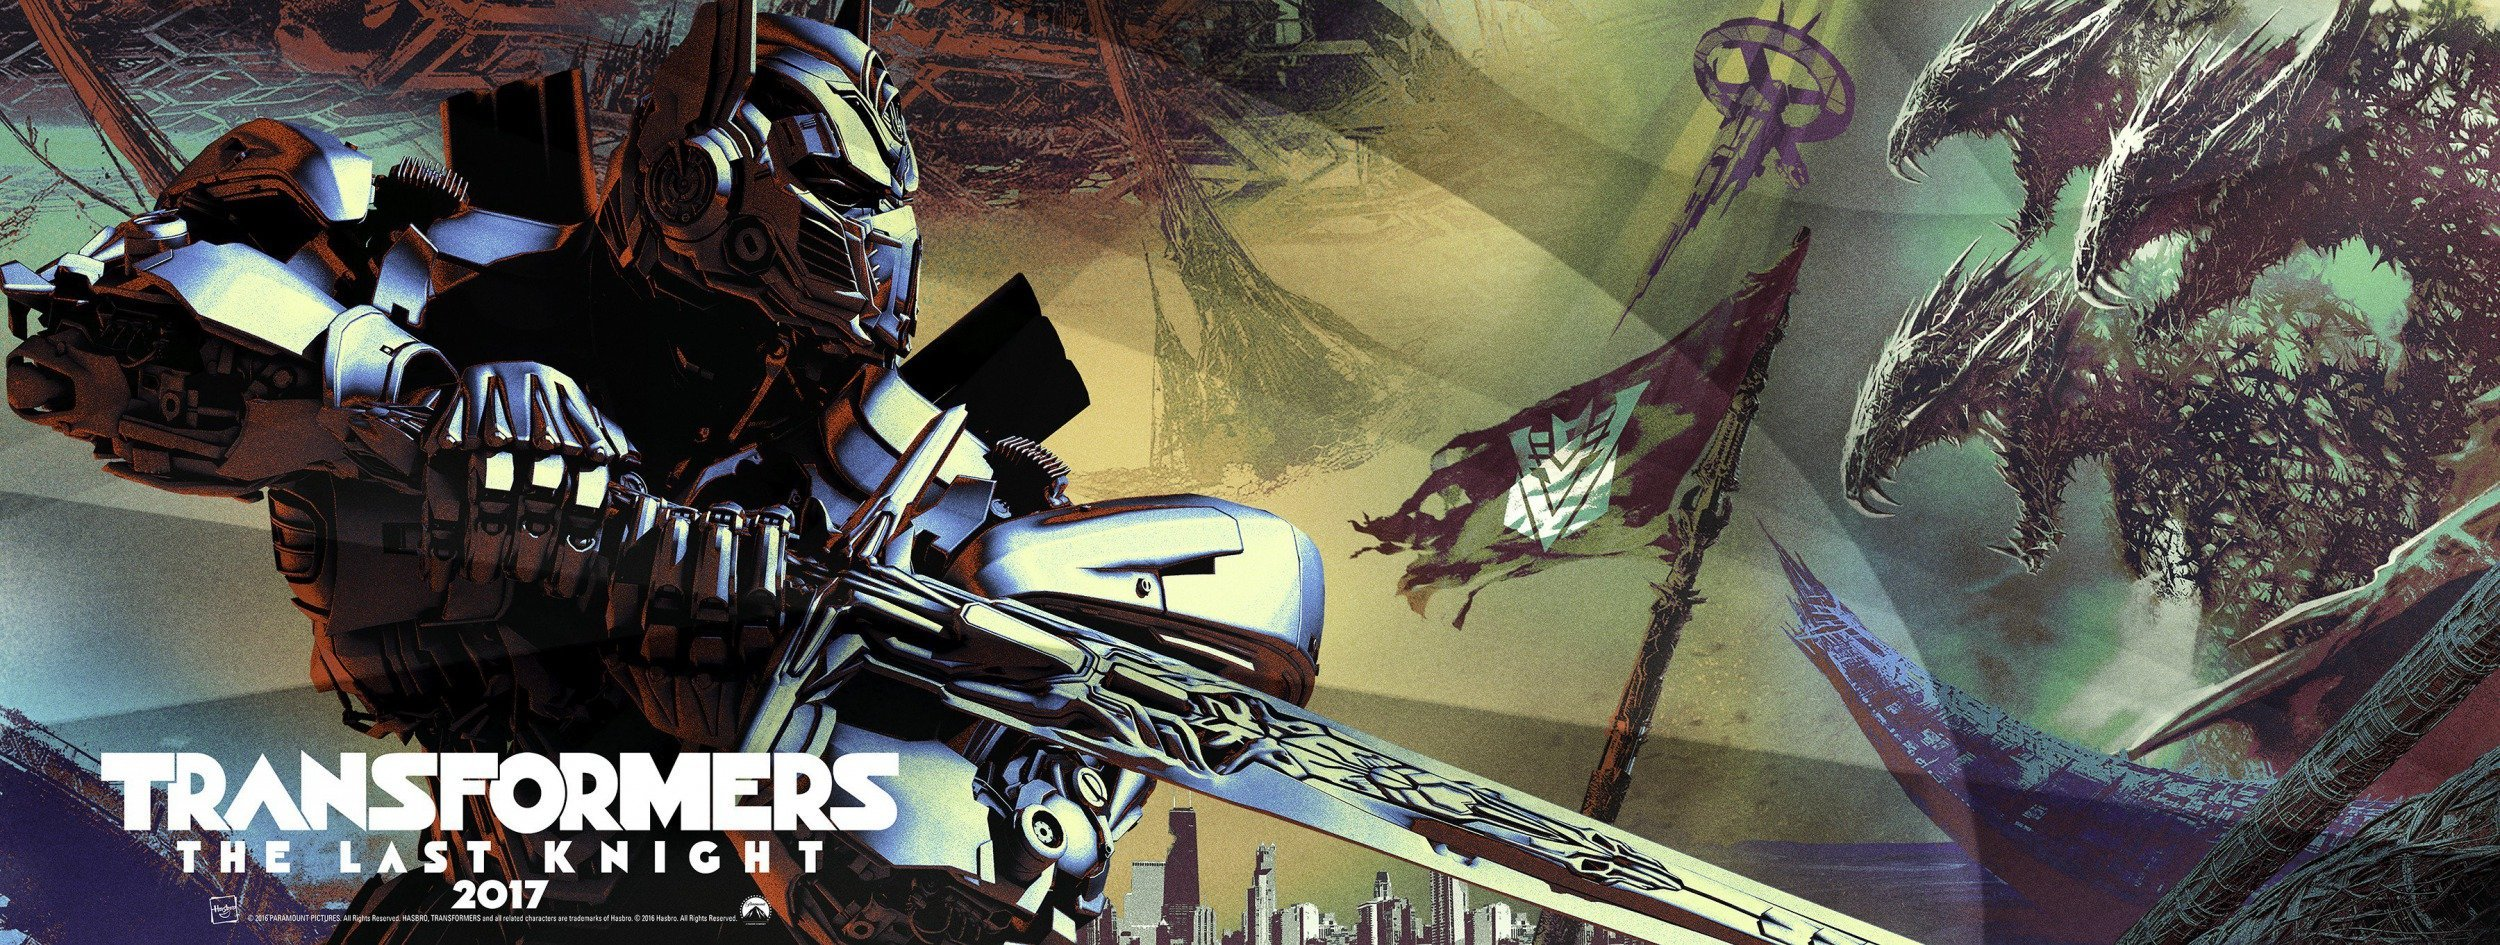 Bannière de Transformers: The Last Knight avec Optimus Prime